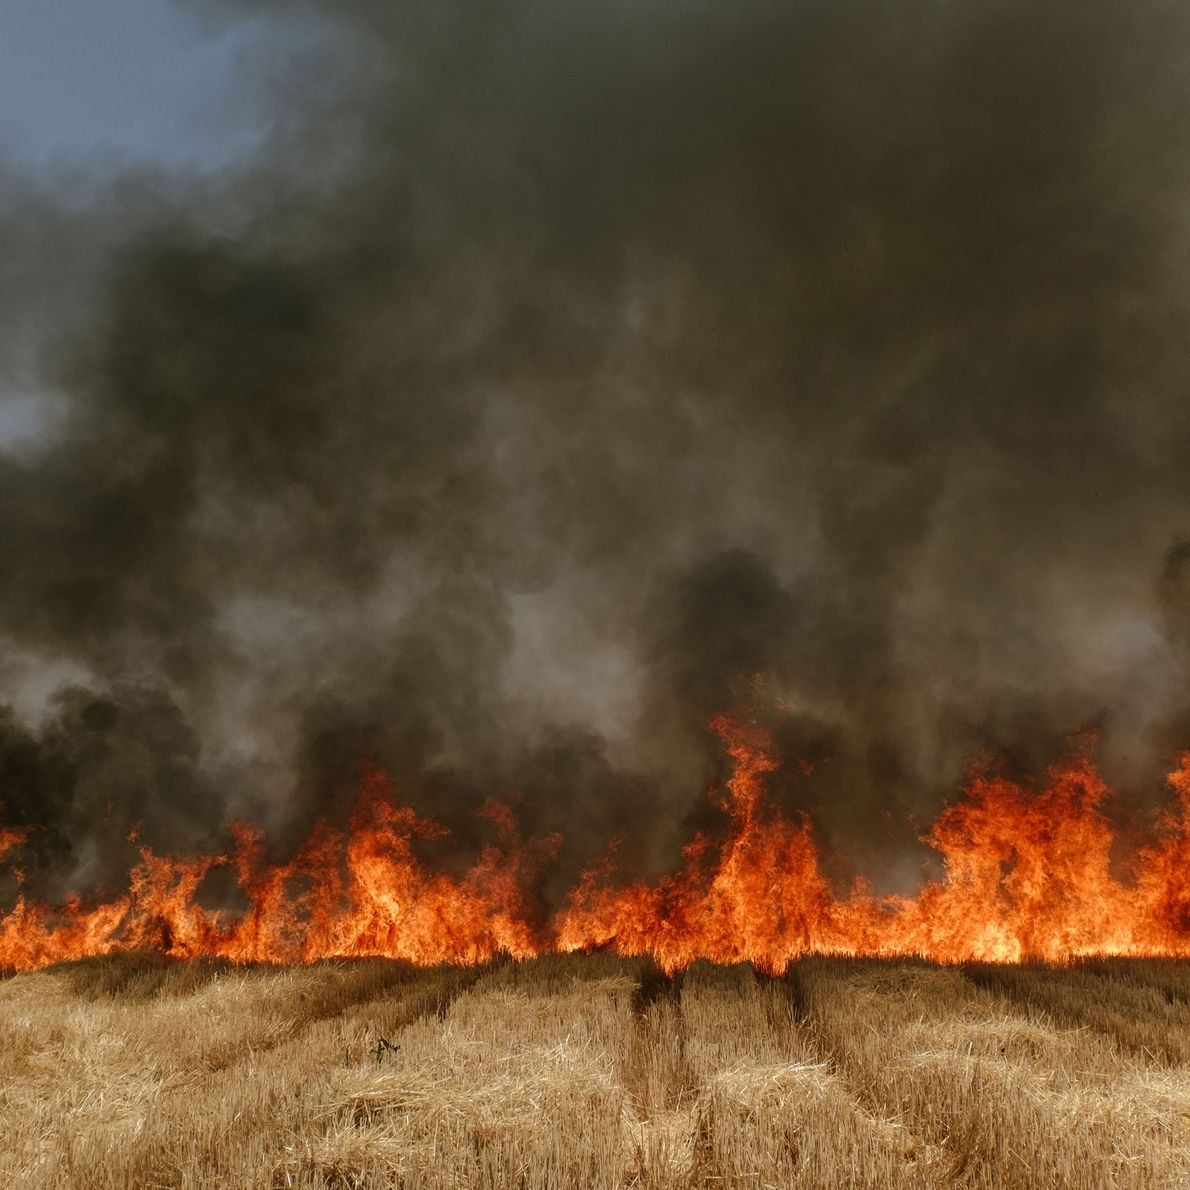 Fire burns through a wheat field in Madhya Pradesh, India. The region has experienced worsening drought ...